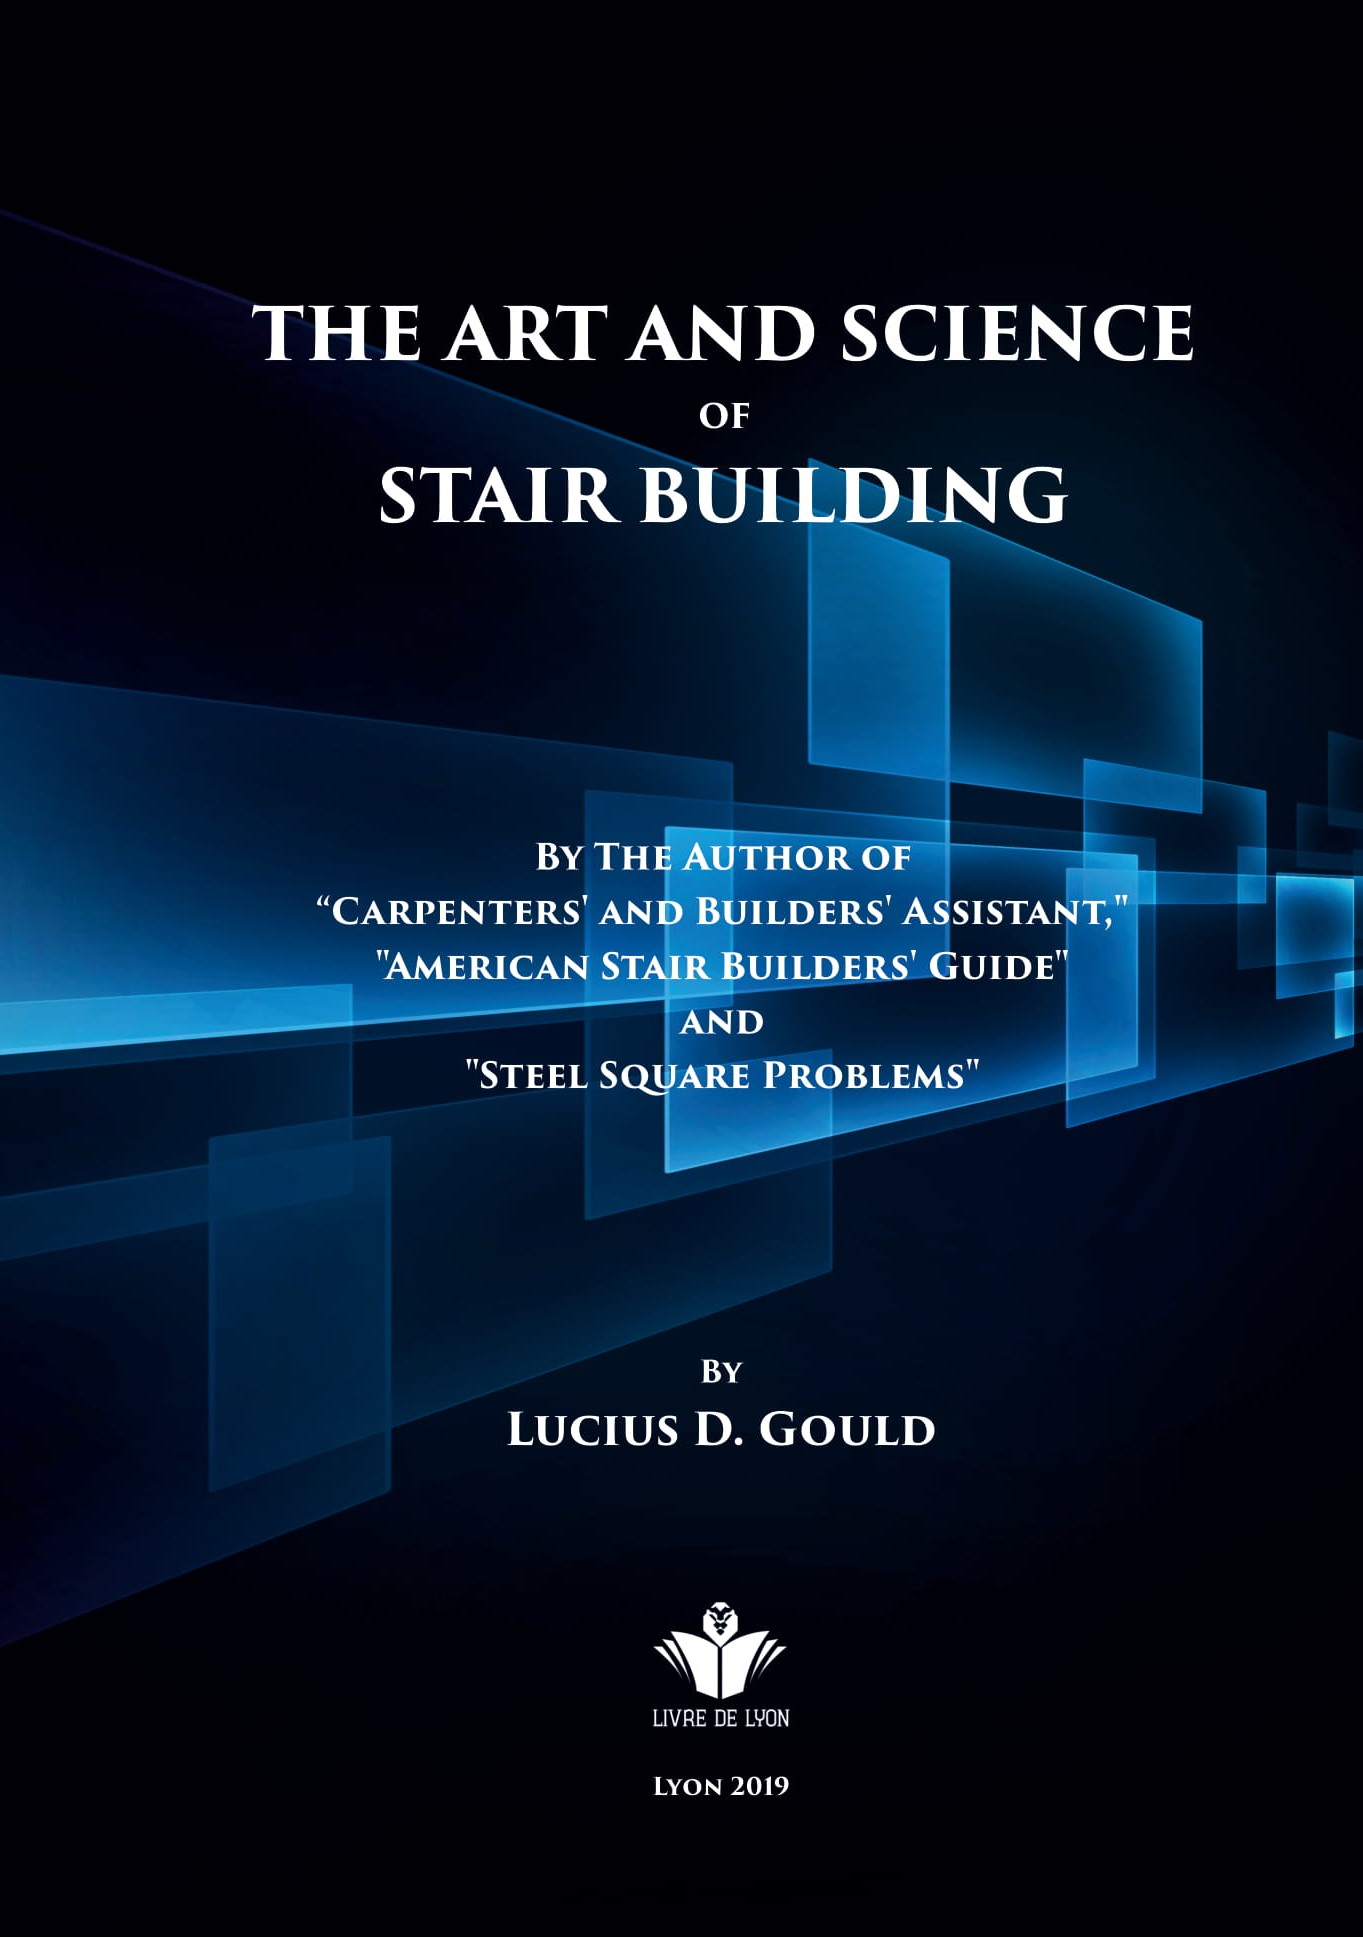 The Art and Science of Stair Building